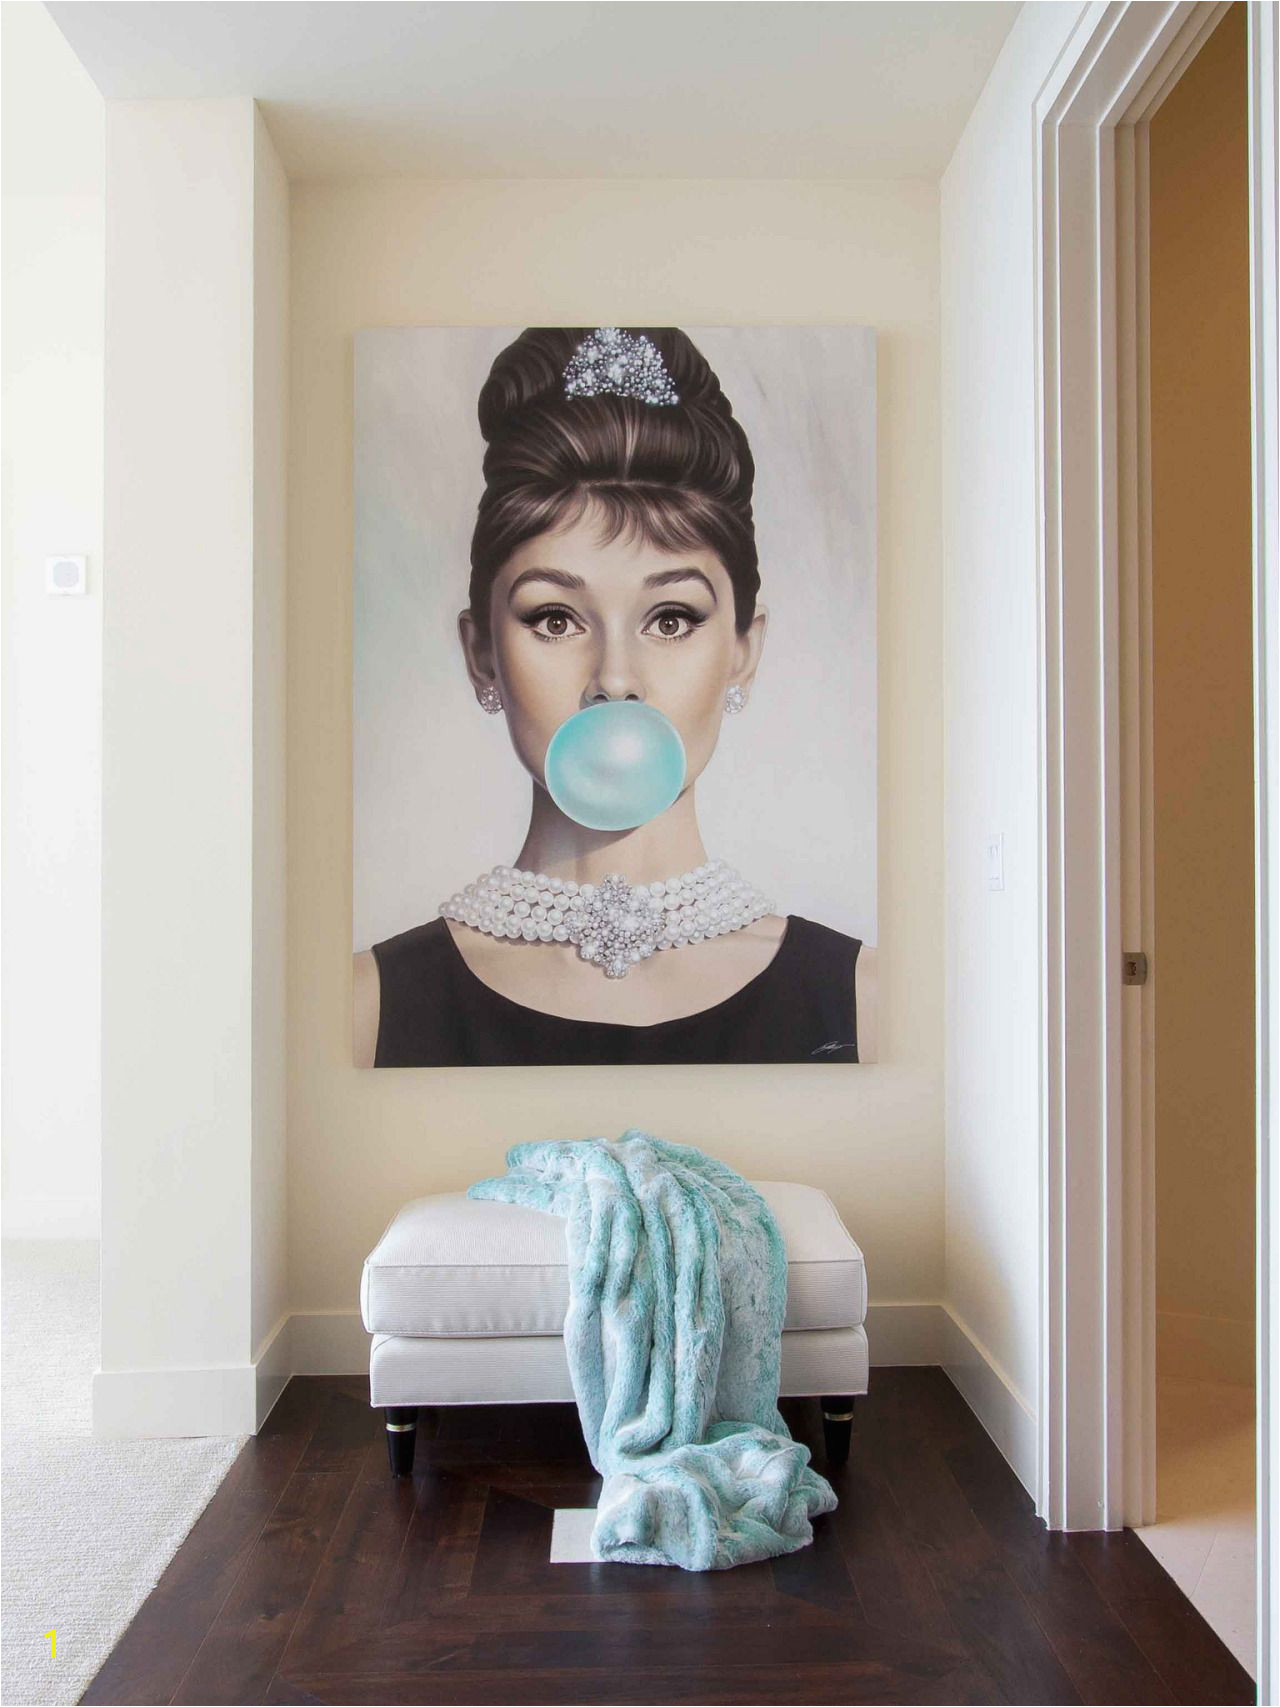 Audrey Hepburn artwork at the end of the hall Brilliance